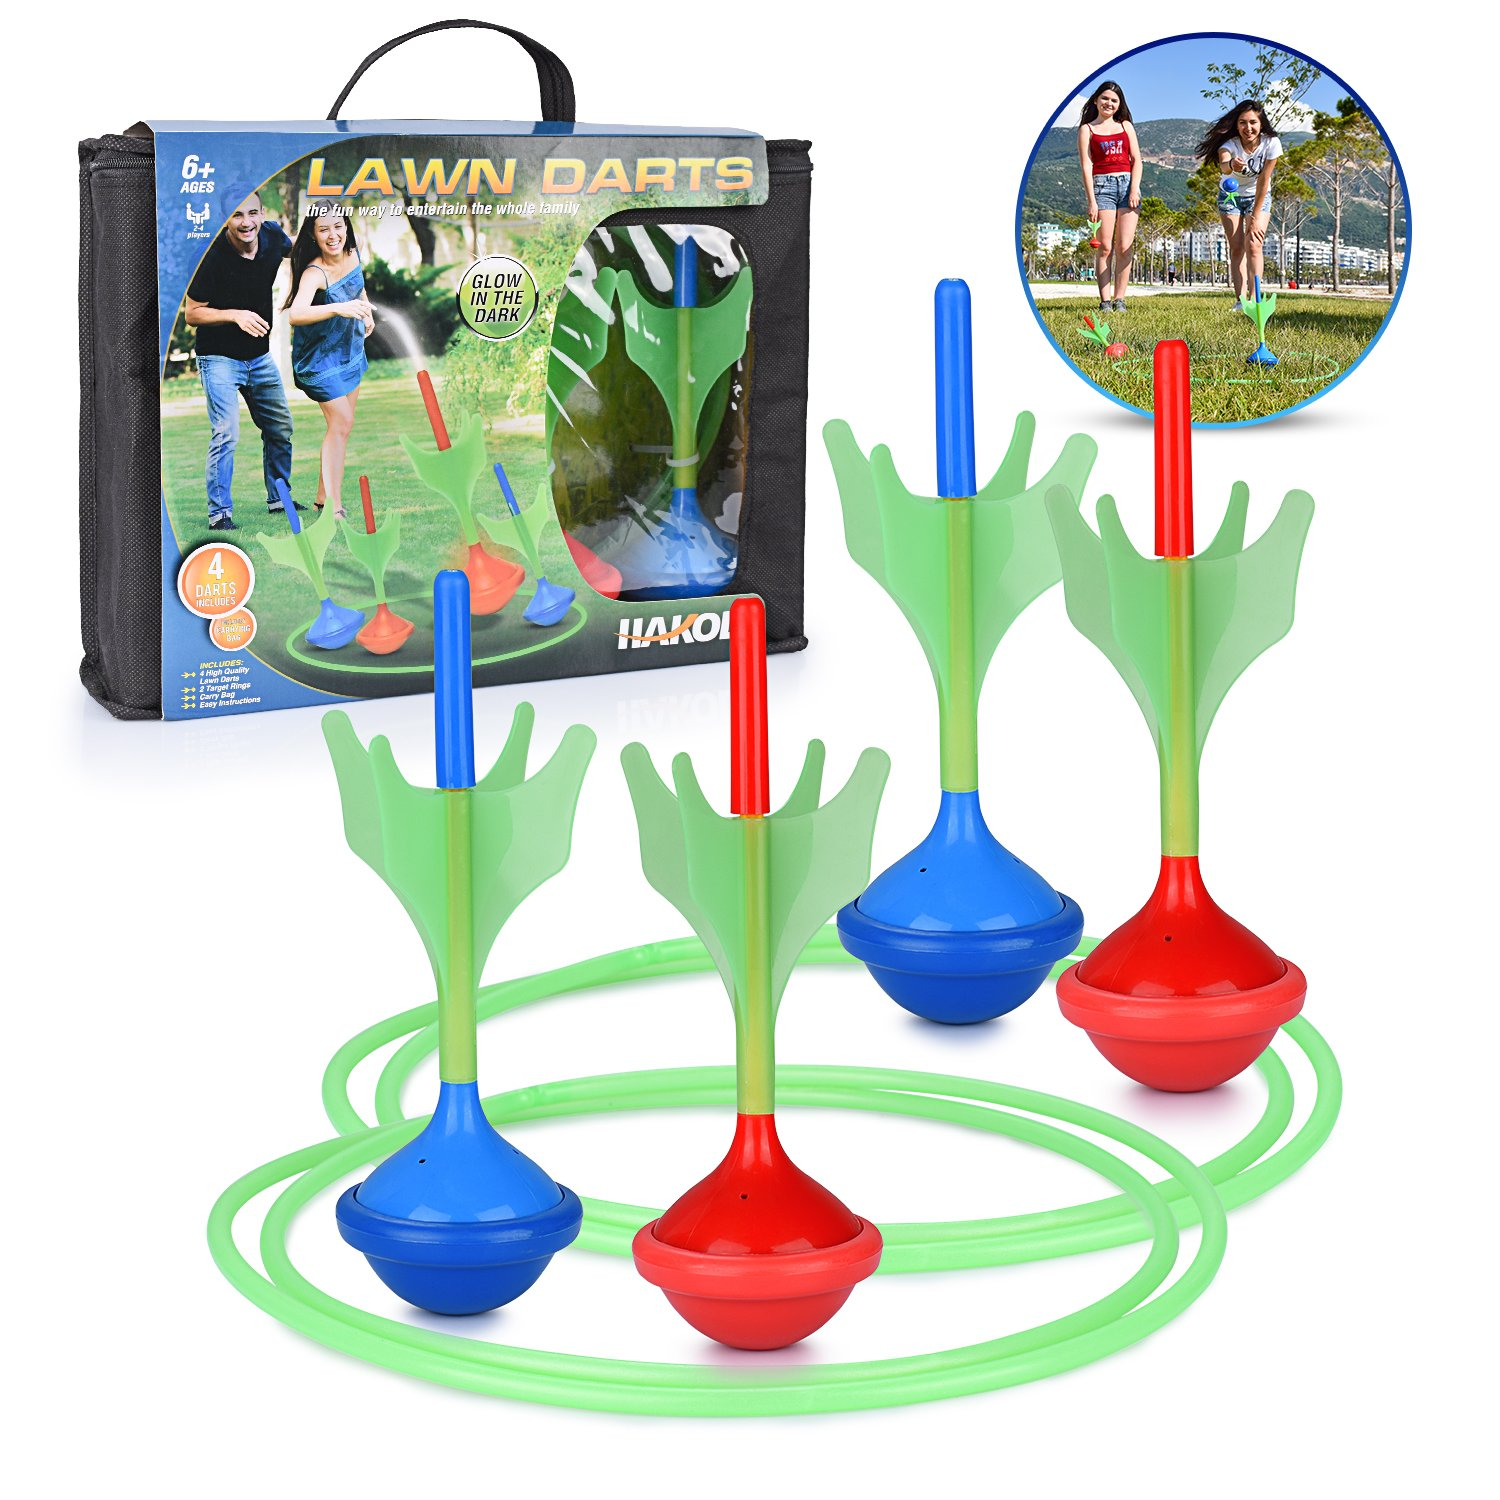 Lawn Darts Game - Glow in The Dark, Outdoor Backyard Toy for Kids & Adults | Fun for The Entire Family | Work On Your Aim & Accuracy While Having A Blast by HAKOL